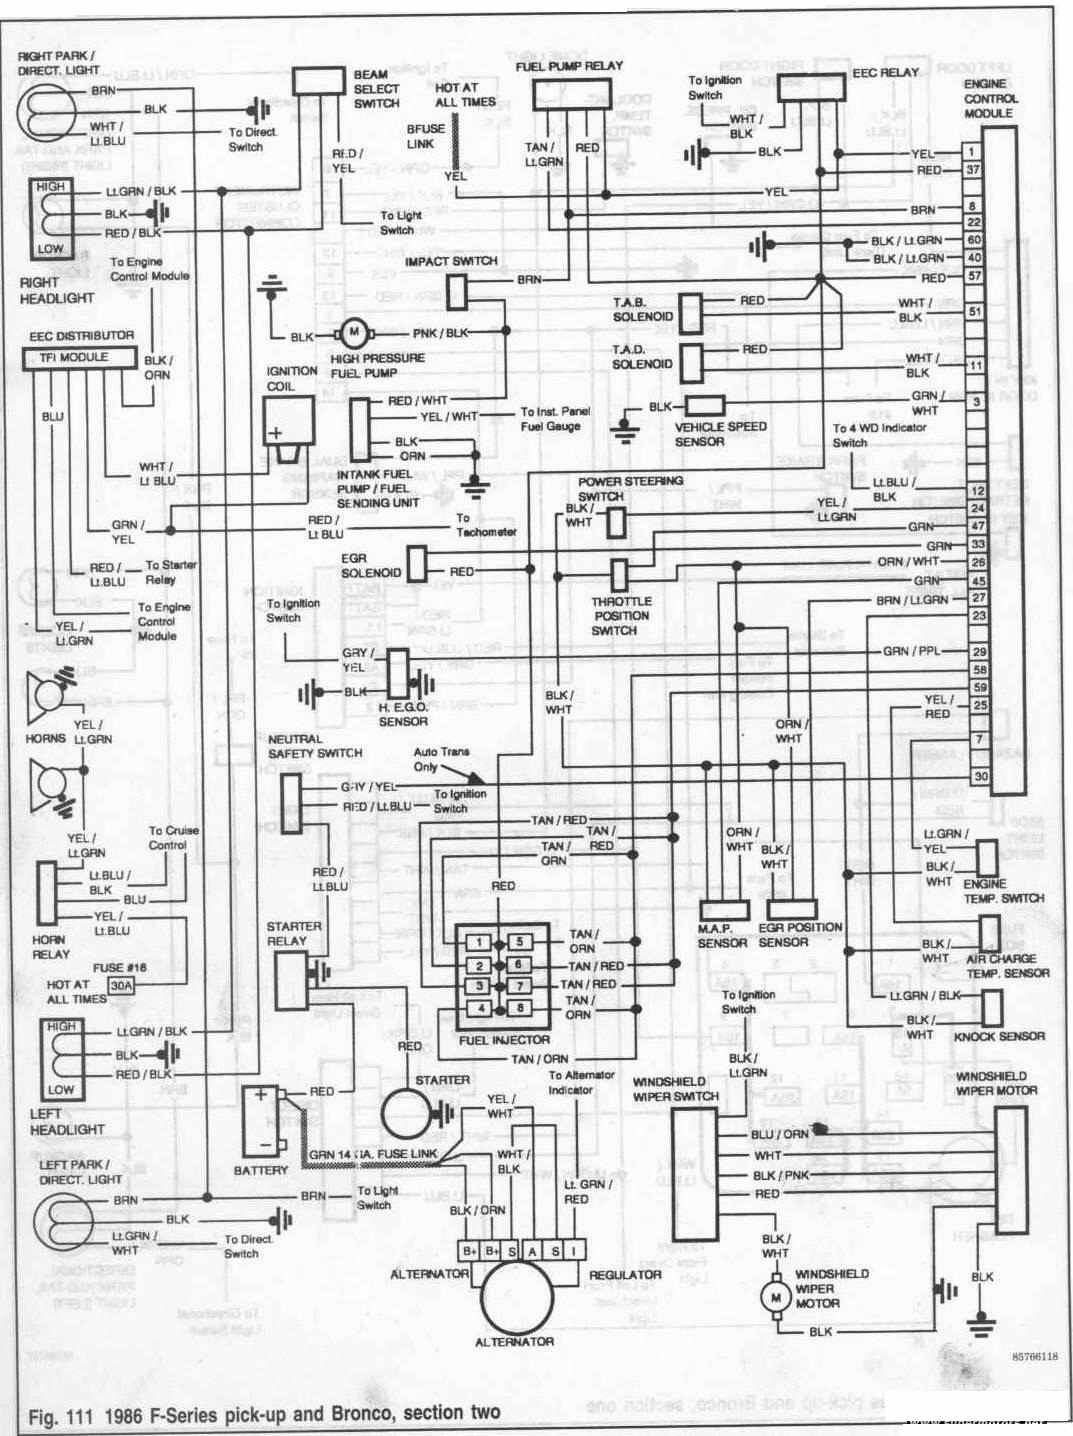 1969 ford bronco alternator wiring diagram ford bronco and f-series pickup 1986 engine control module ... #14